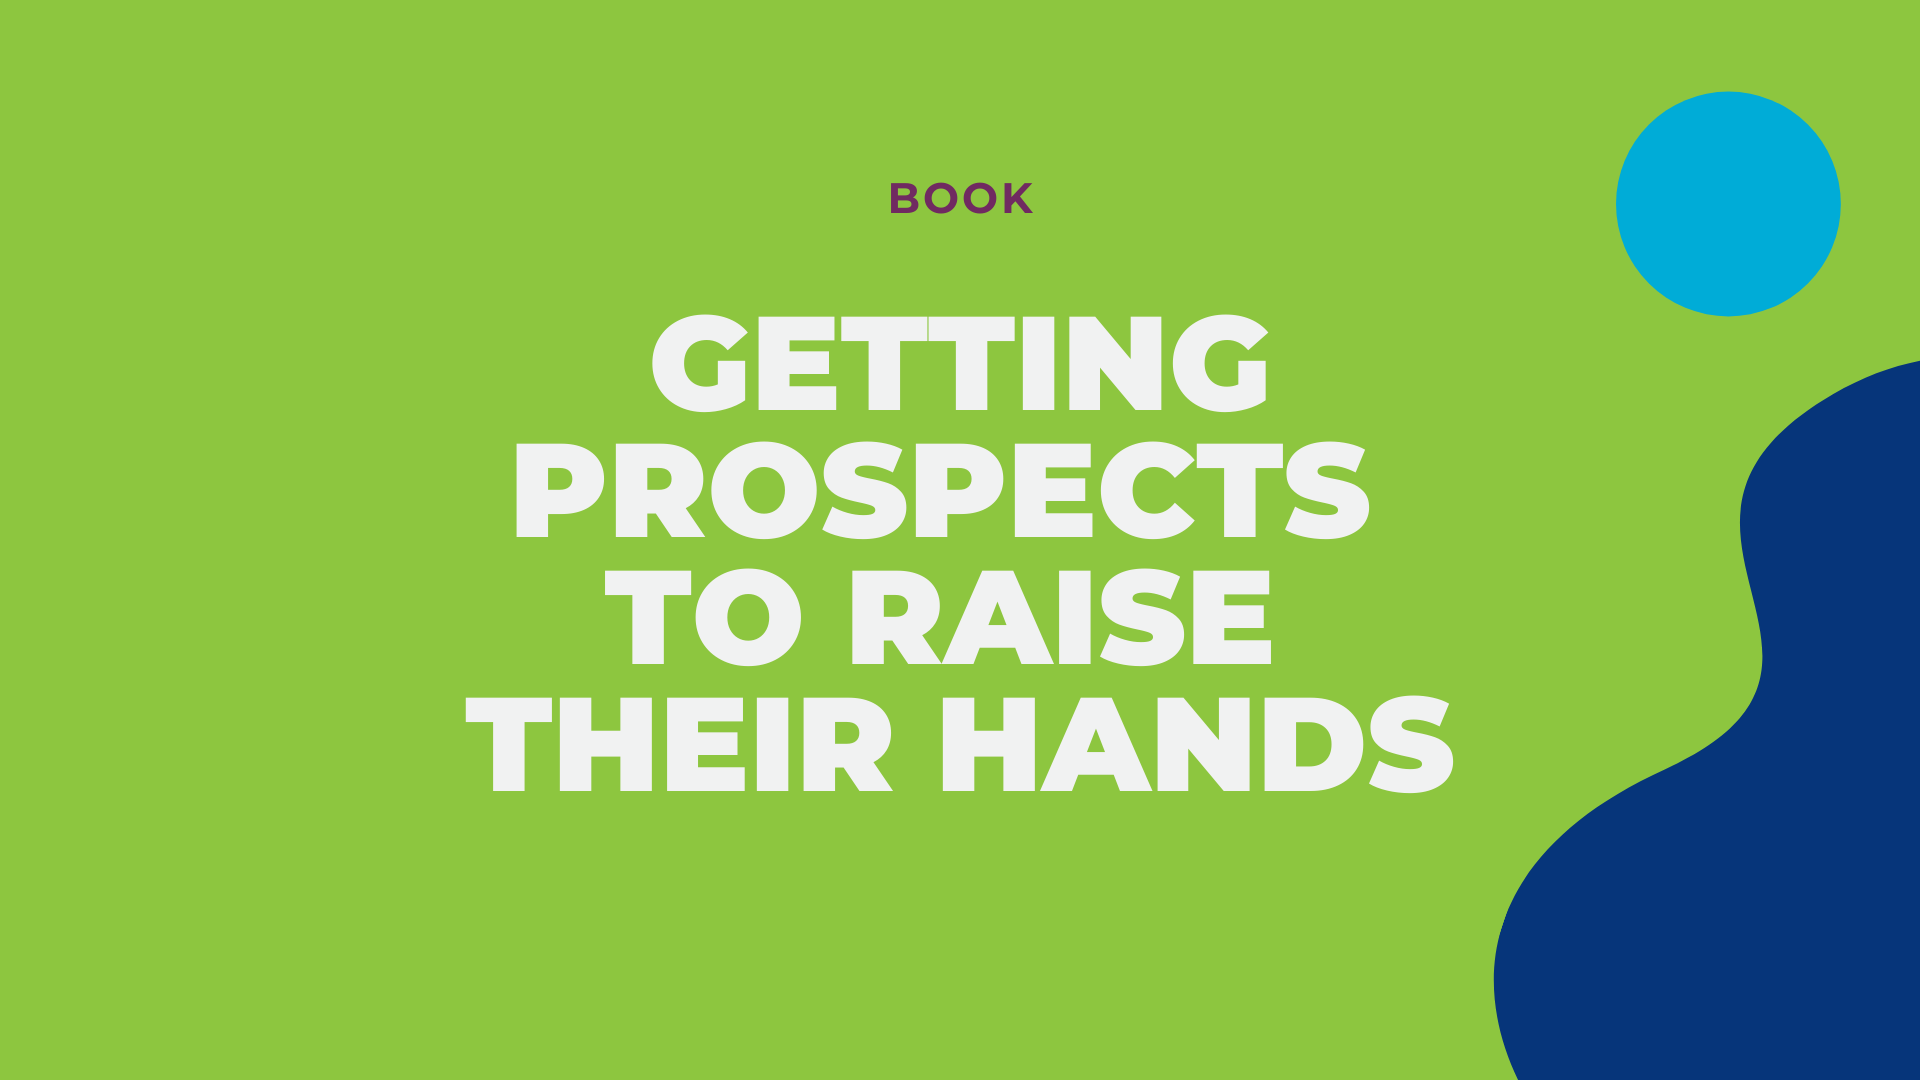 LG2 Website Resource - book - getting prospects to raise their hands